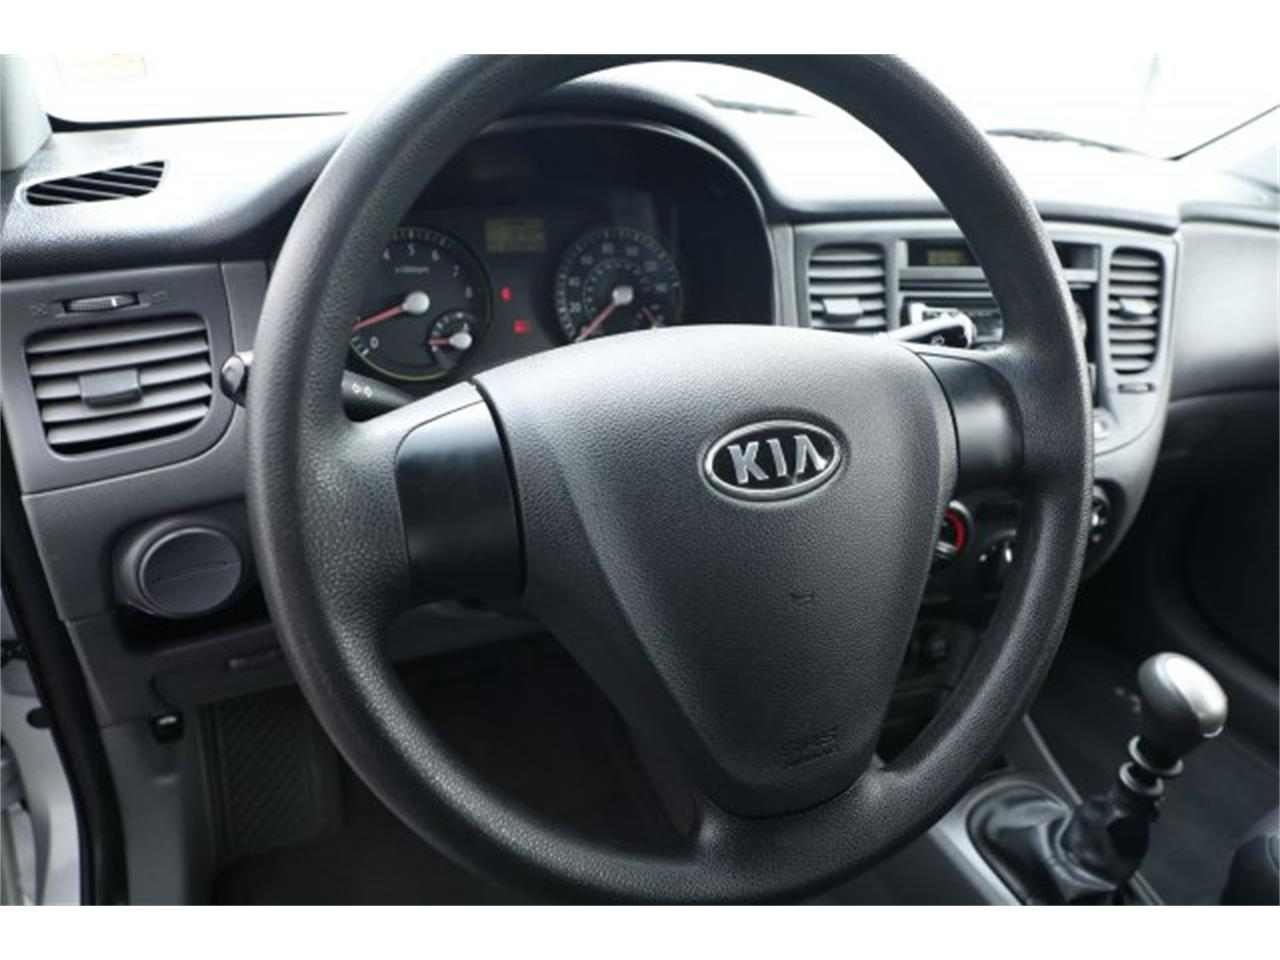 Large Picture of '07 Kia Rio located in Lynnwood Washington - $4,995.00 - LB8T